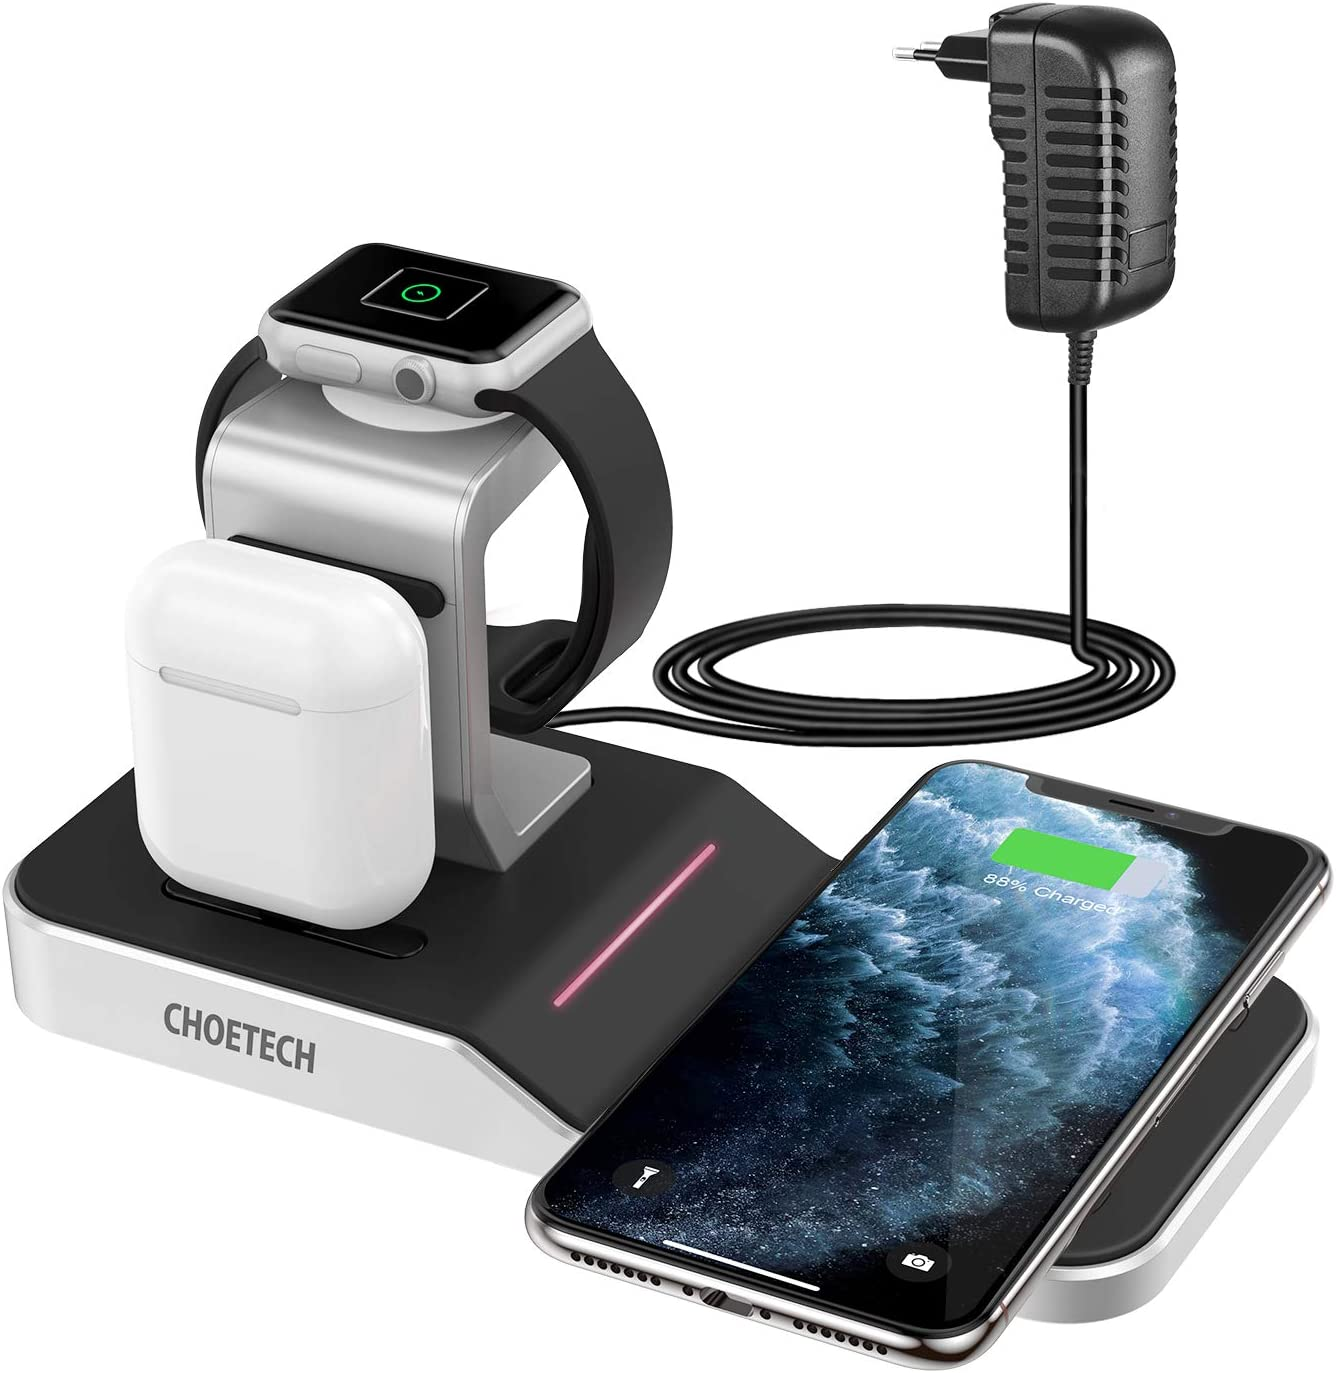 CHOETECH Cargador Inalámbrico MFI, 4 En 1 Apple Watch 5/4/3/2/1,Airpods 1/2/Pro, iPad Base Carga, 7.5/10W Qi Cargador para iPhone 11/11Pro Max/SE/X/8/XR/8 Plus, Galaxy Note 10/Note 9 / S20/S10/S9/S8